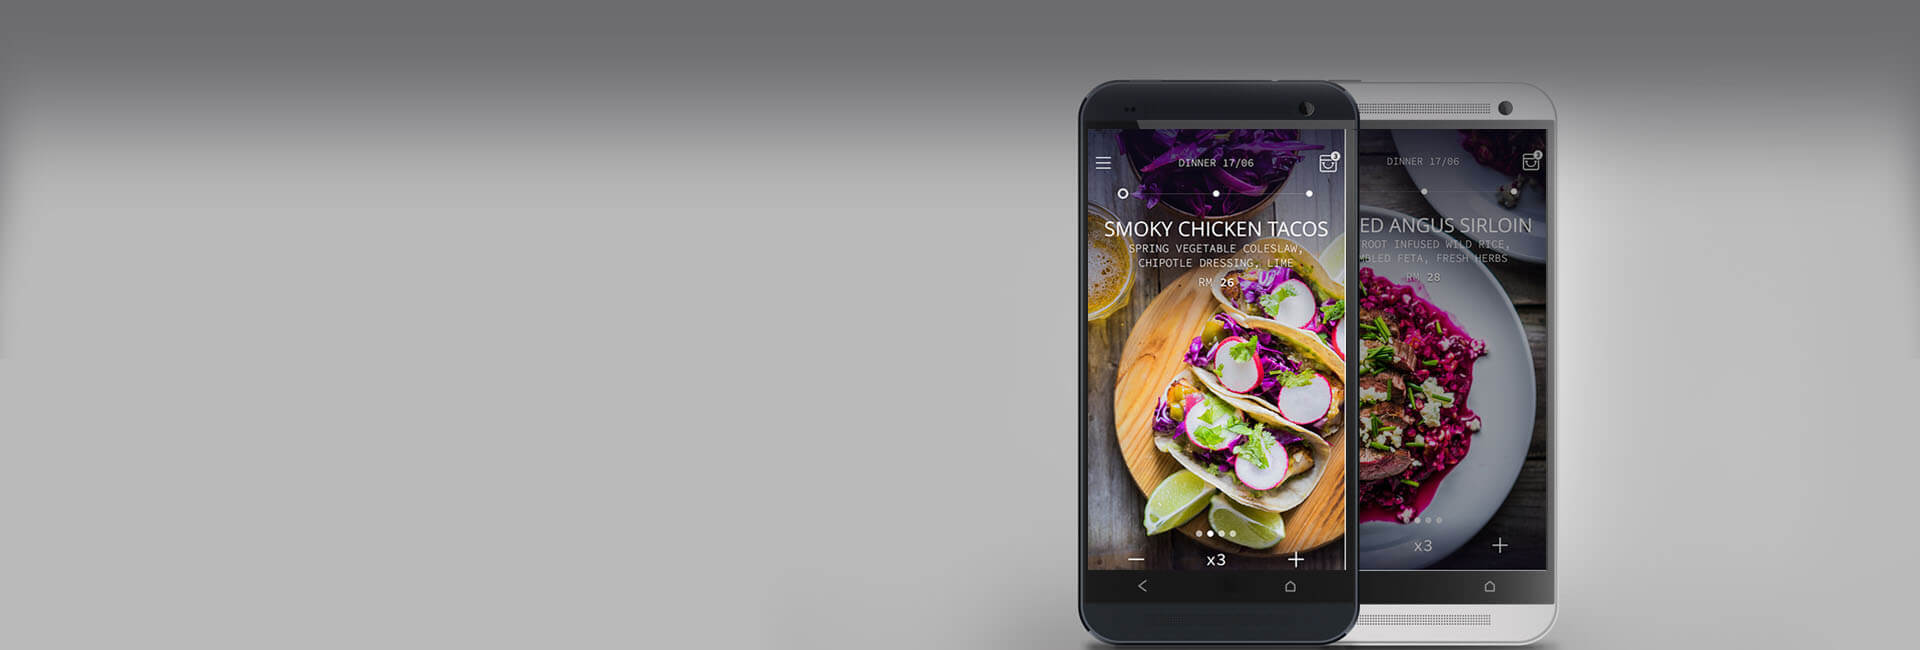 Food Delivery Ecommerce App development for Web, IOS and Android Platform